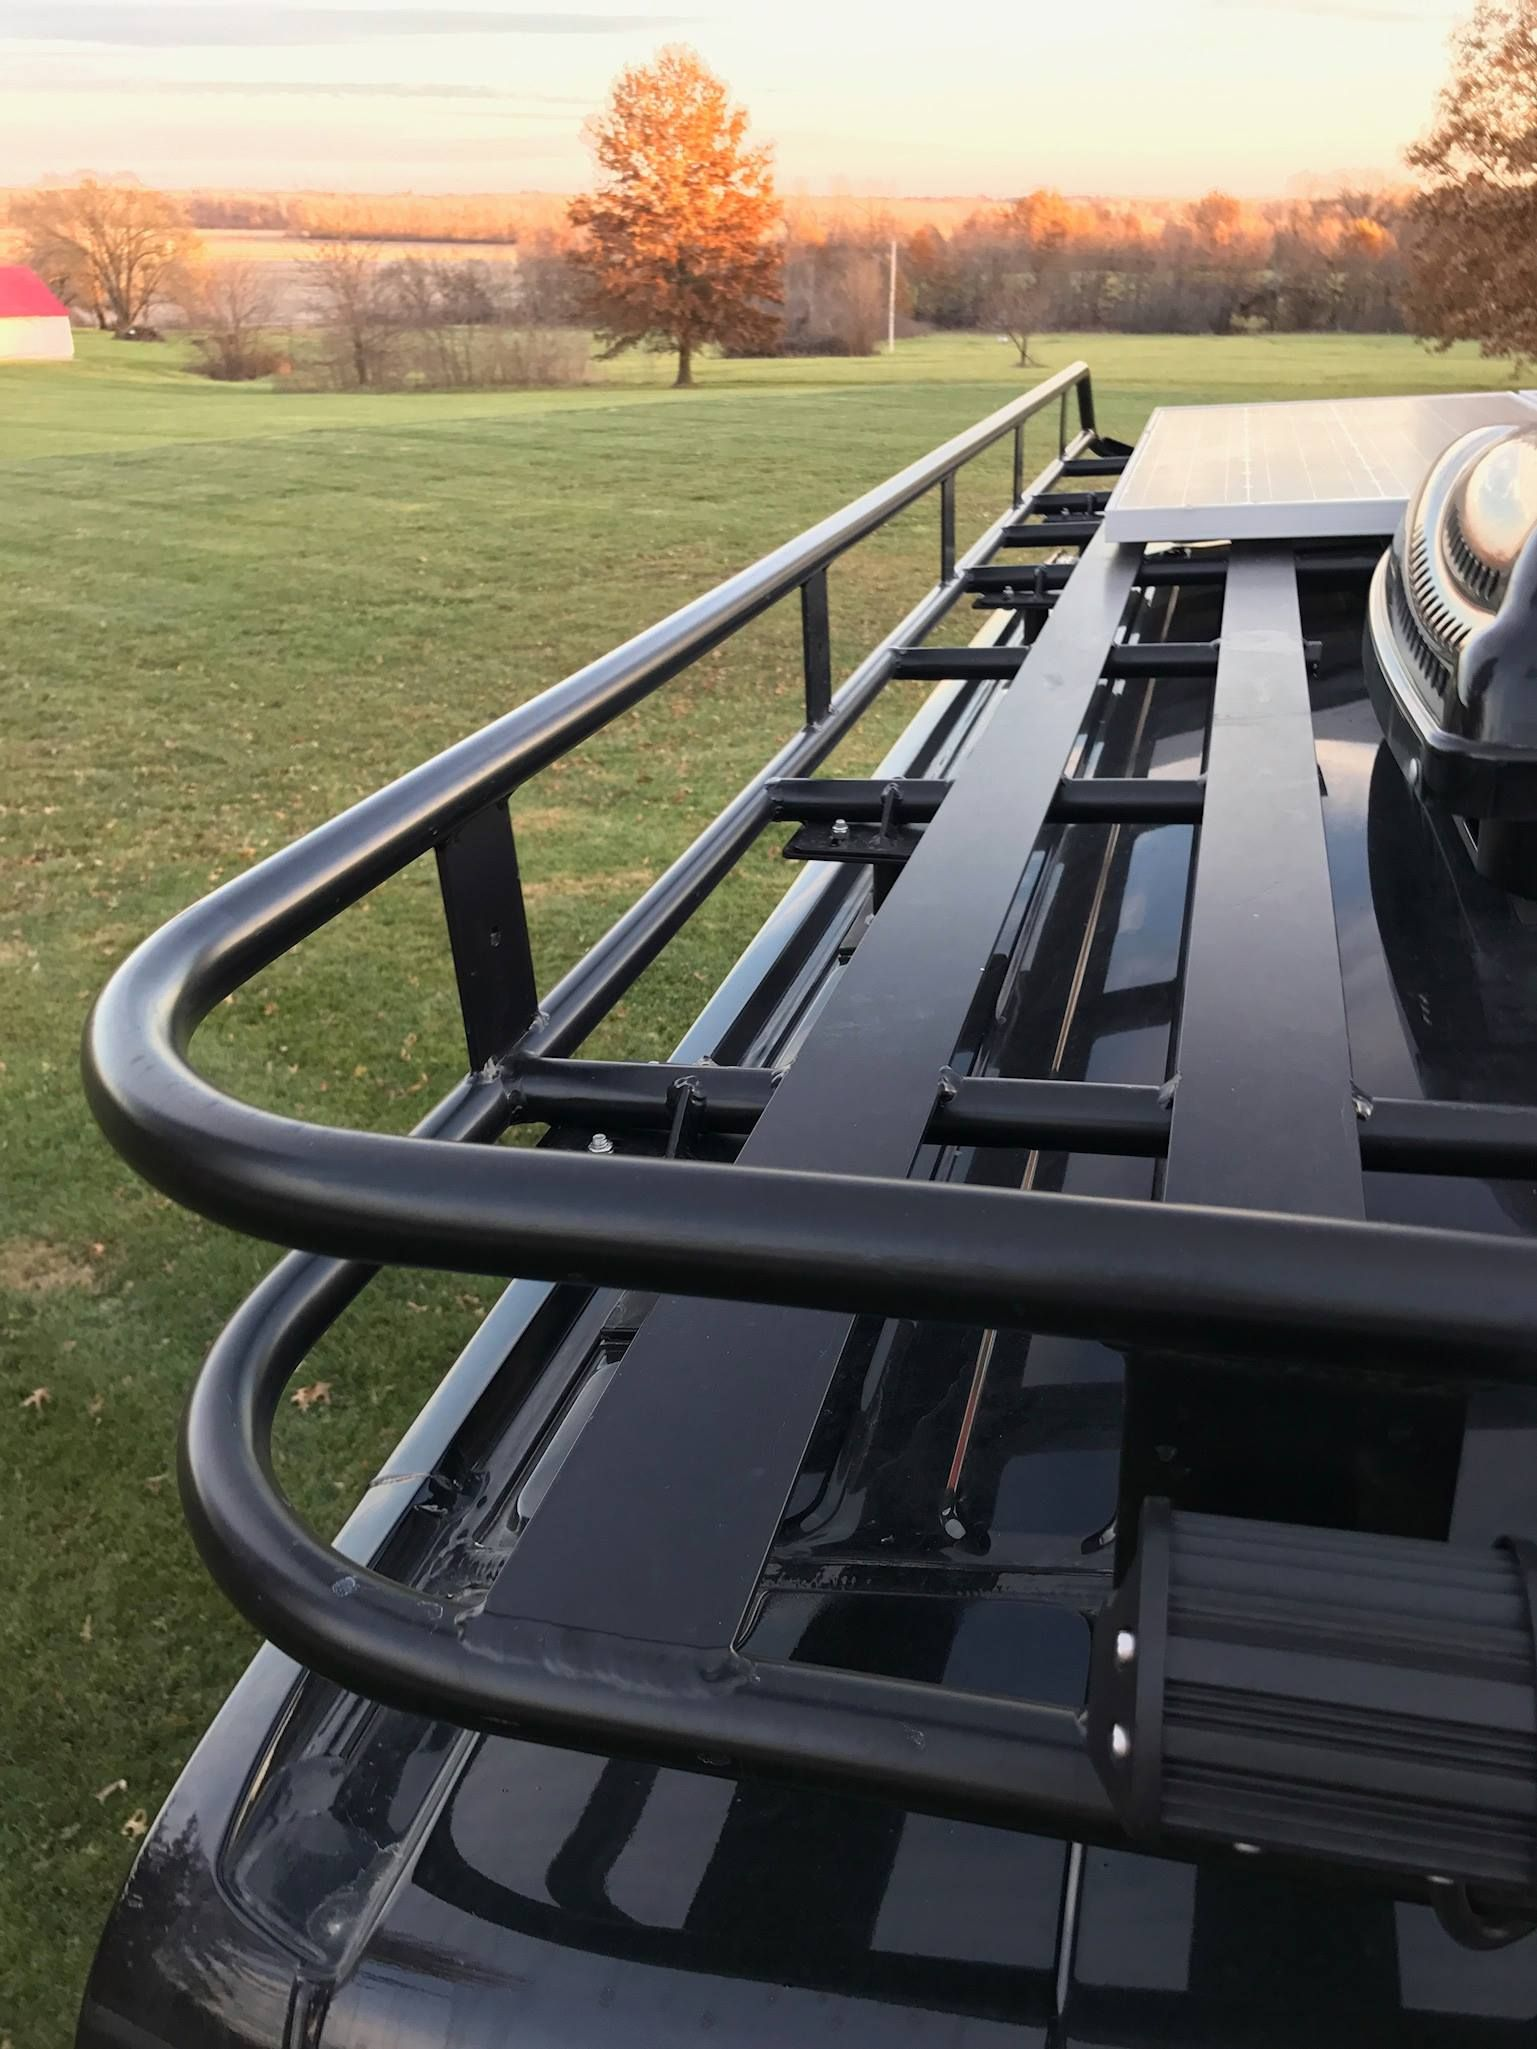 Vandoit Offers Several Different Kinds Of Roof Racks Including Aluminess Thule And Smitty Built Defender Ford Transit Camper Chevy Astro Van Transit Camper